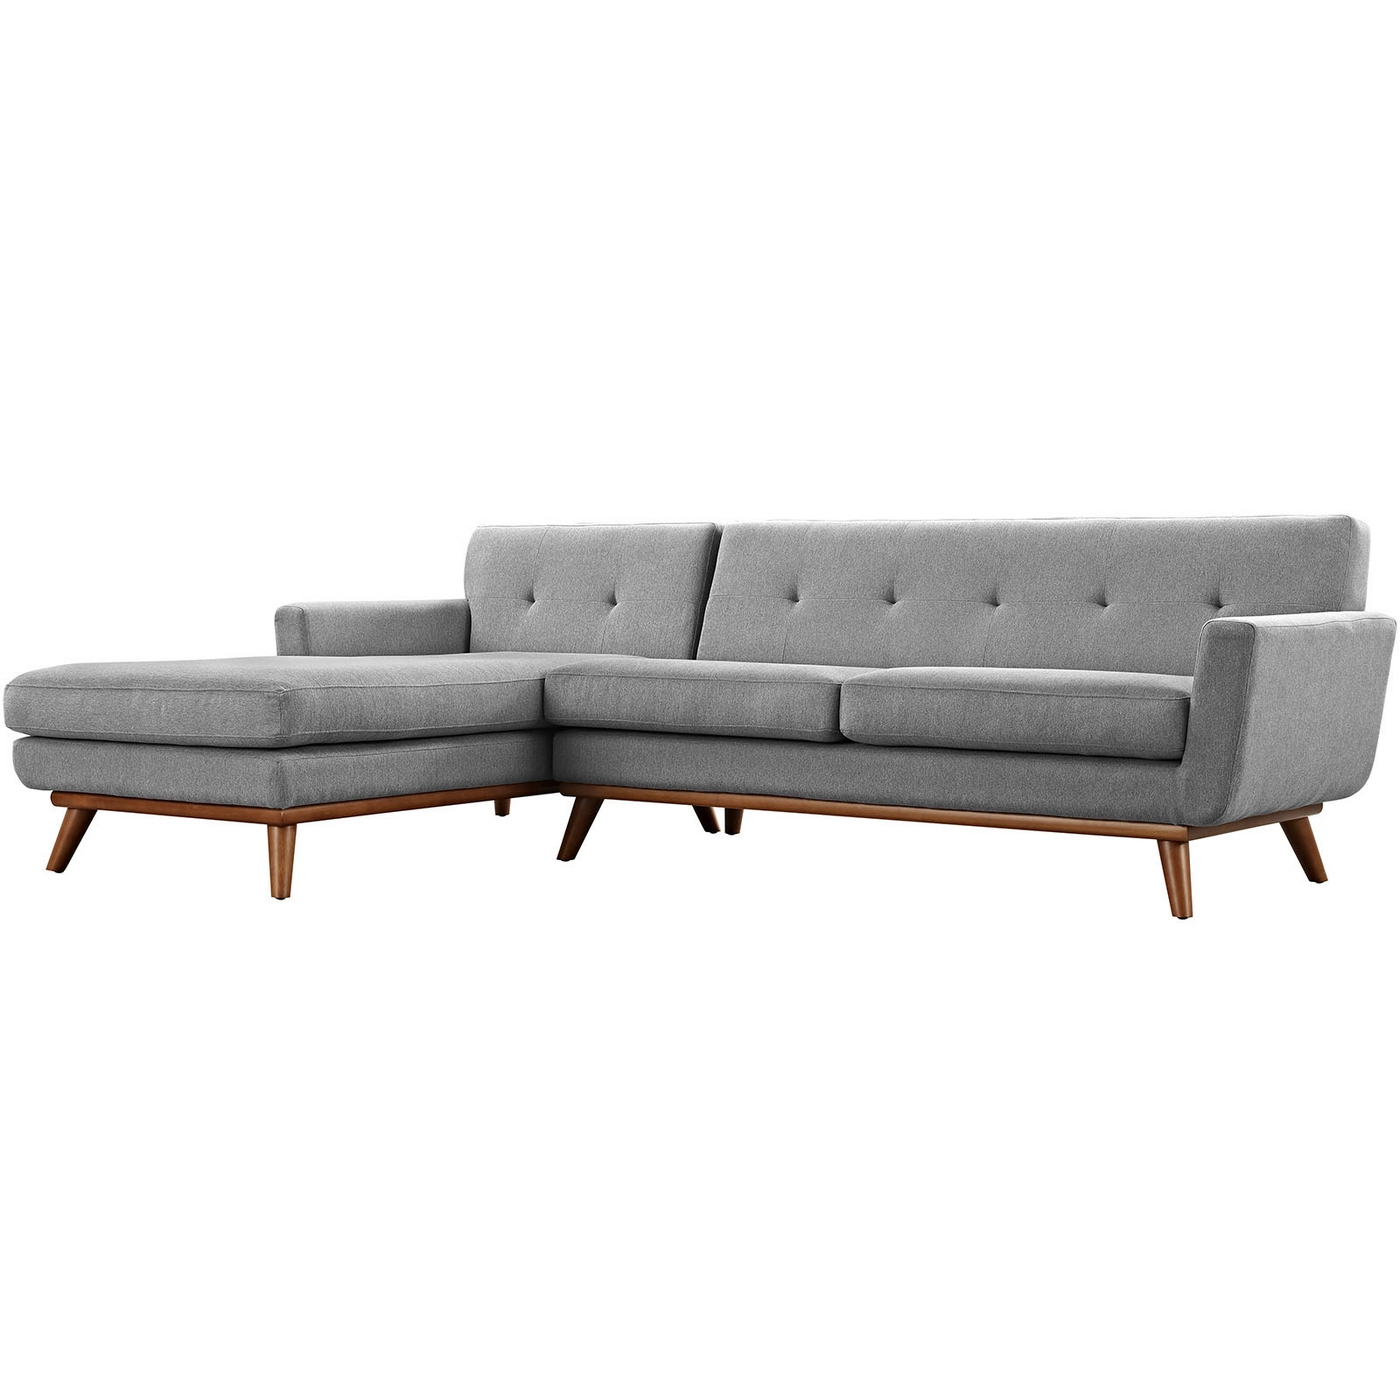 Popular Mid Century Modern Engage Right Facing Chaise Sectional Throughout Alani Mid Century Modern Sectional Sofas With Chaise (View 19 of 20)